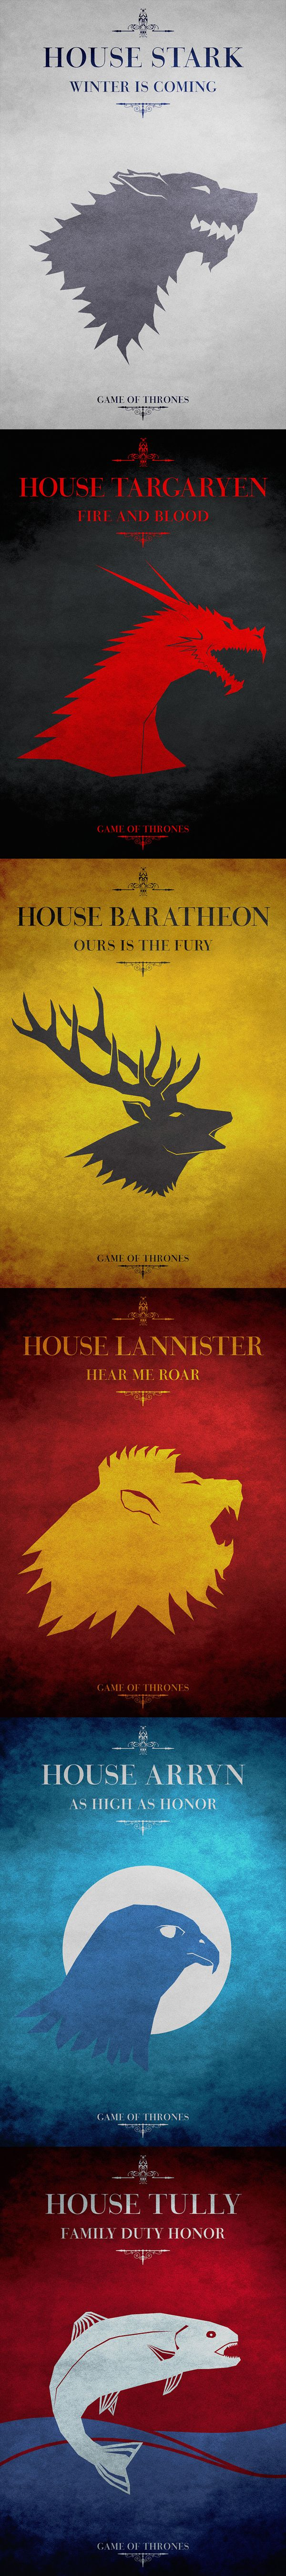 Game of Thrones by Guillaume Bachelier, via Behance #gamesofthrones #pictures #HBO